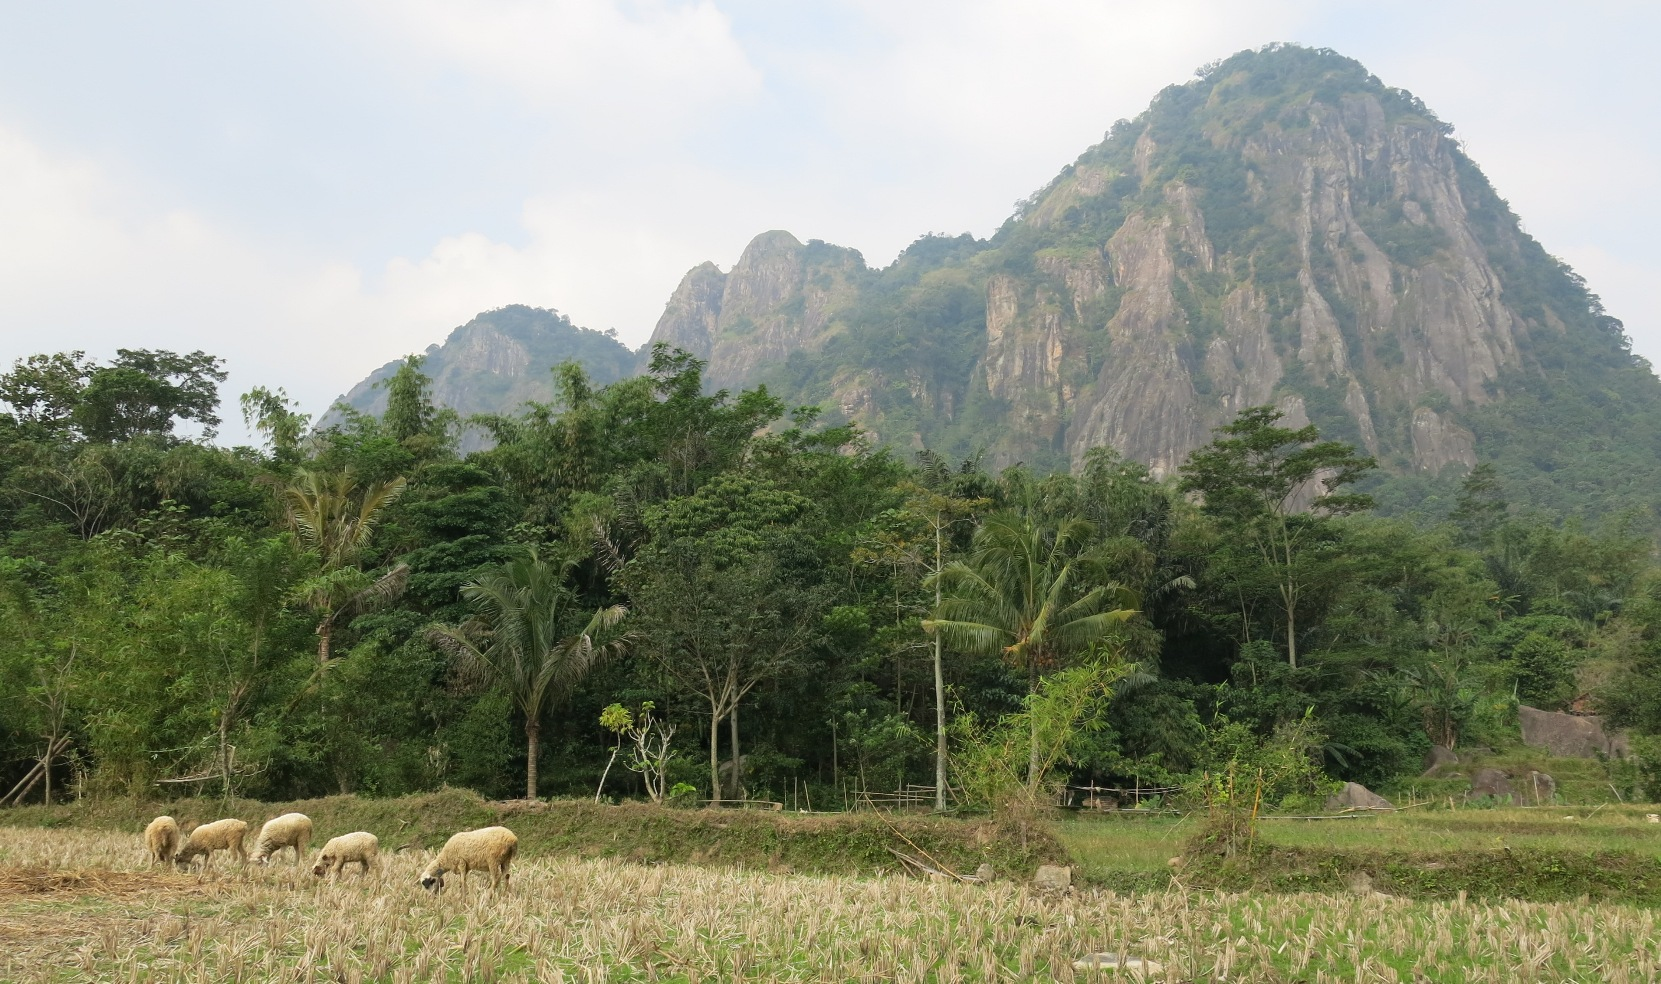 Farmland and mountains in Purwakarta, a rural area between Jakarta and Bandung, and were much of the tunnel excavation for the new HSR is taking place. Photo by  blue tooth 7.